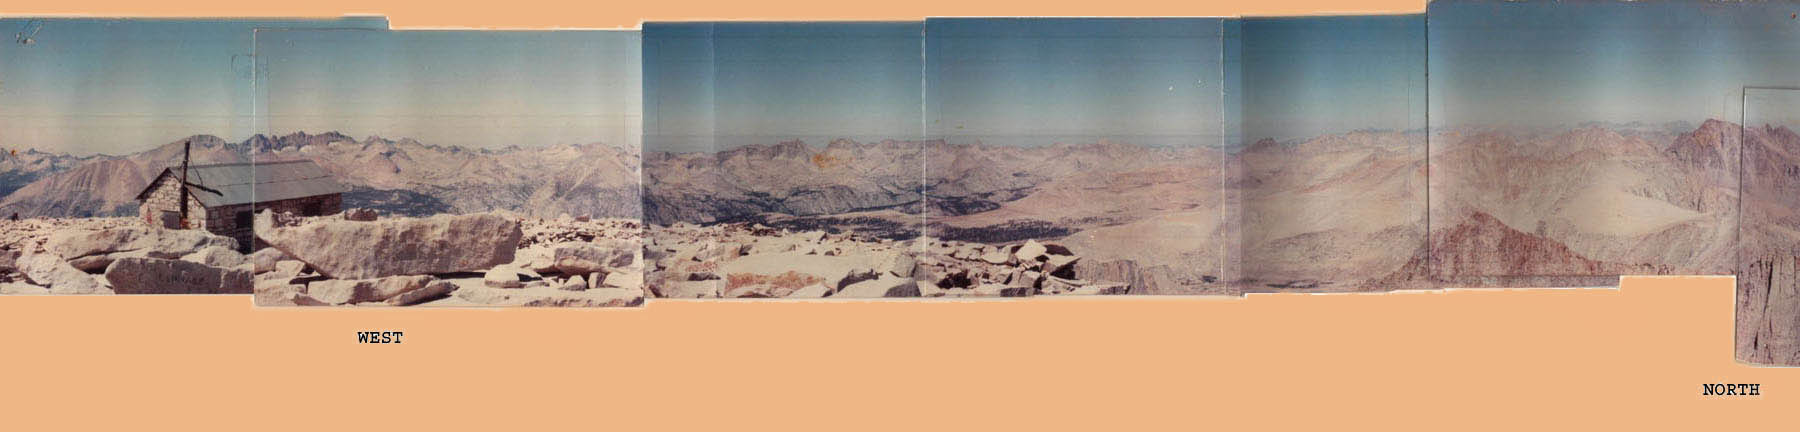 360-degree Panorama from Summit of Mt. Whitney